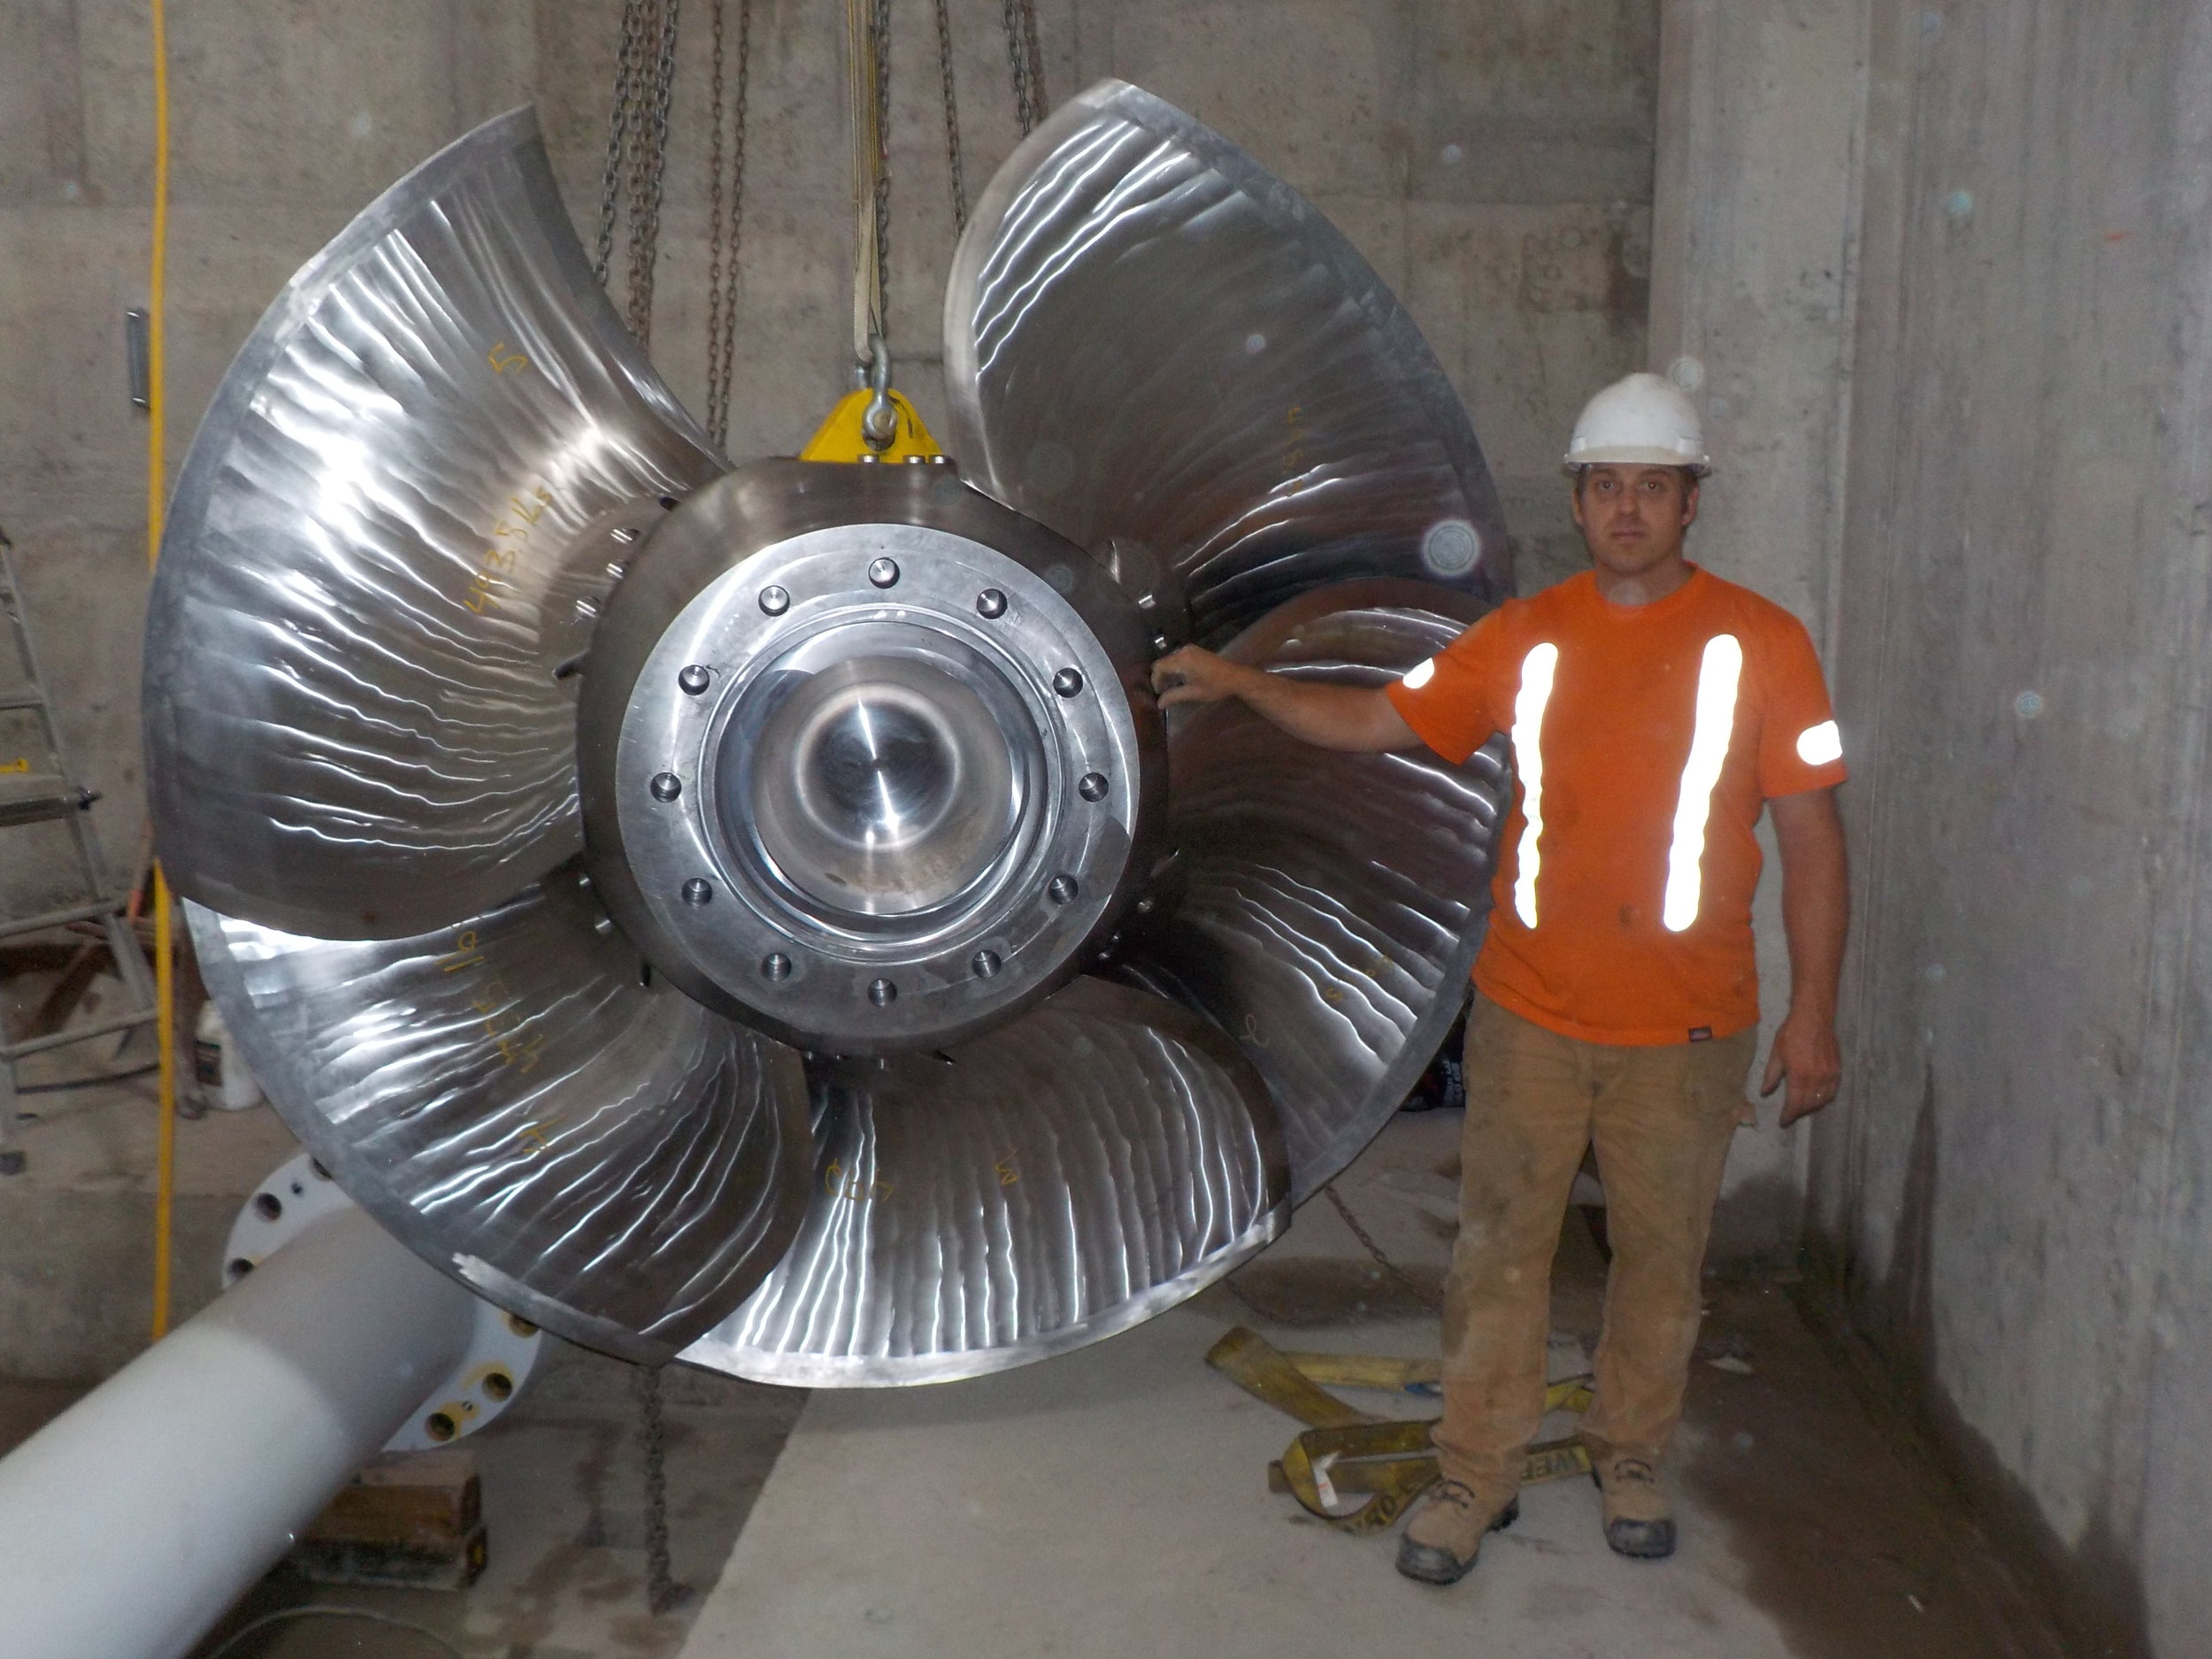 - The six-blade Kaplan turbine runner prior to install.